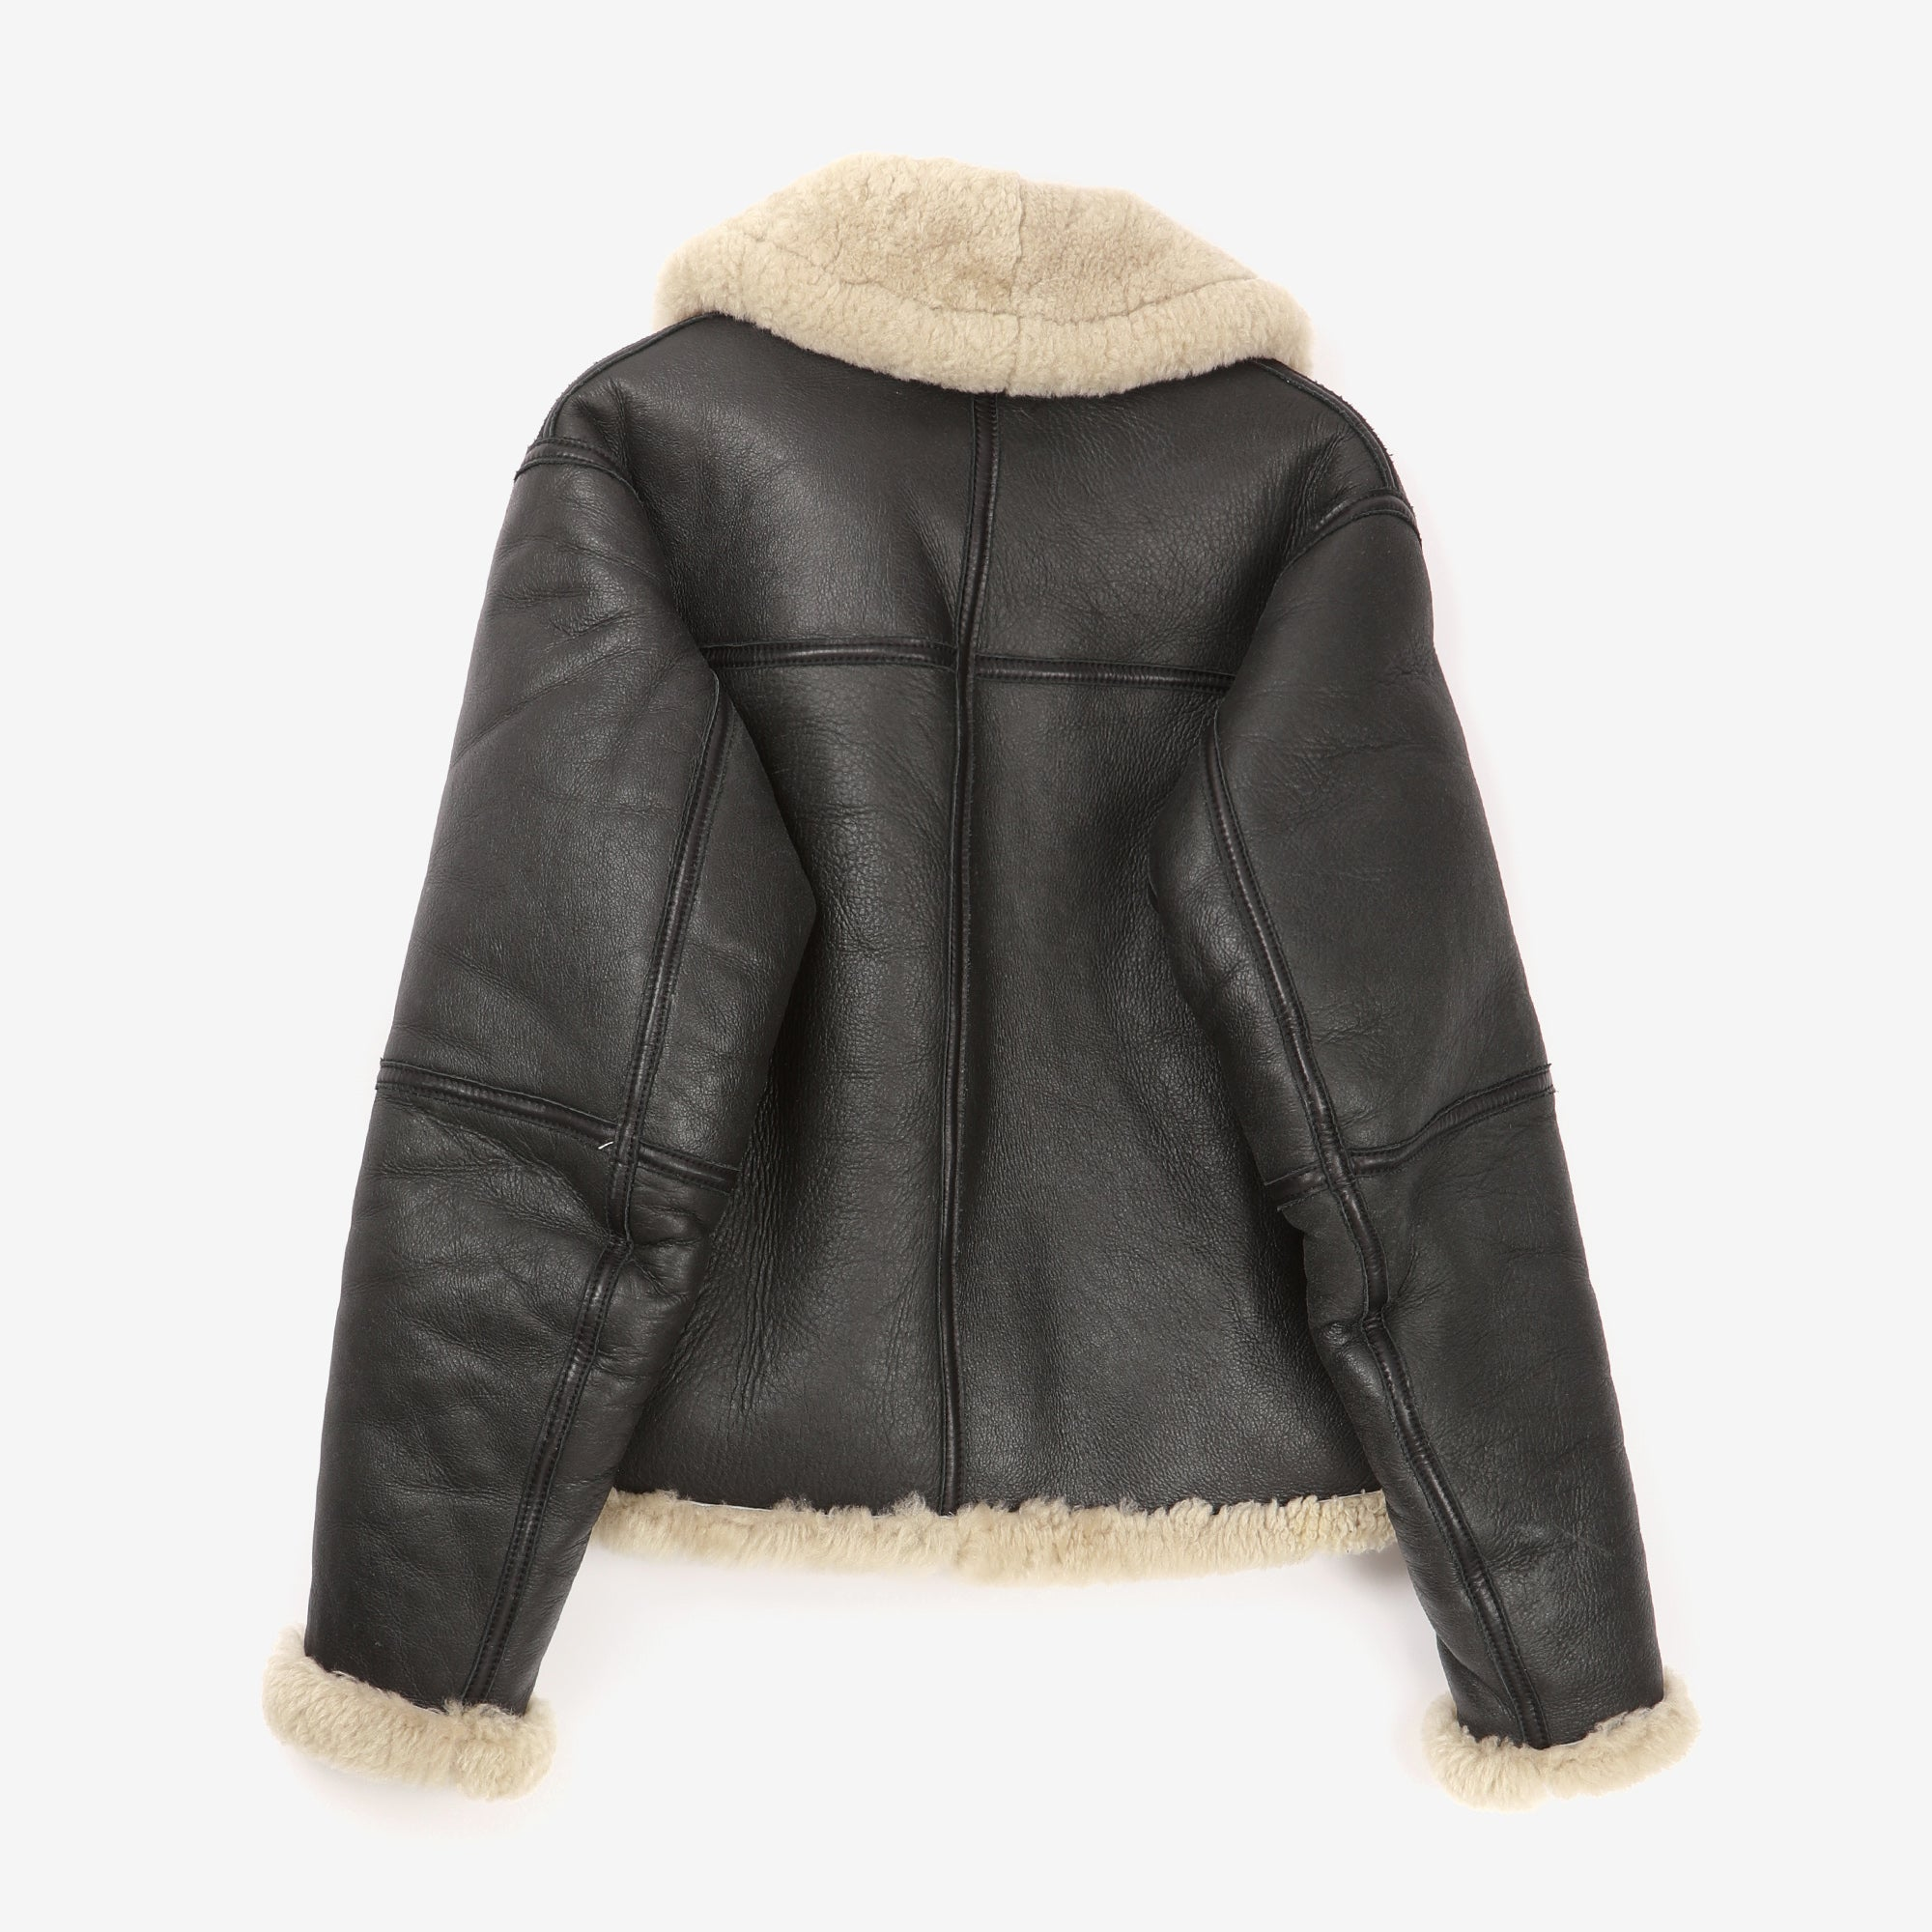 USAAF Sheepskin Flying Jacket